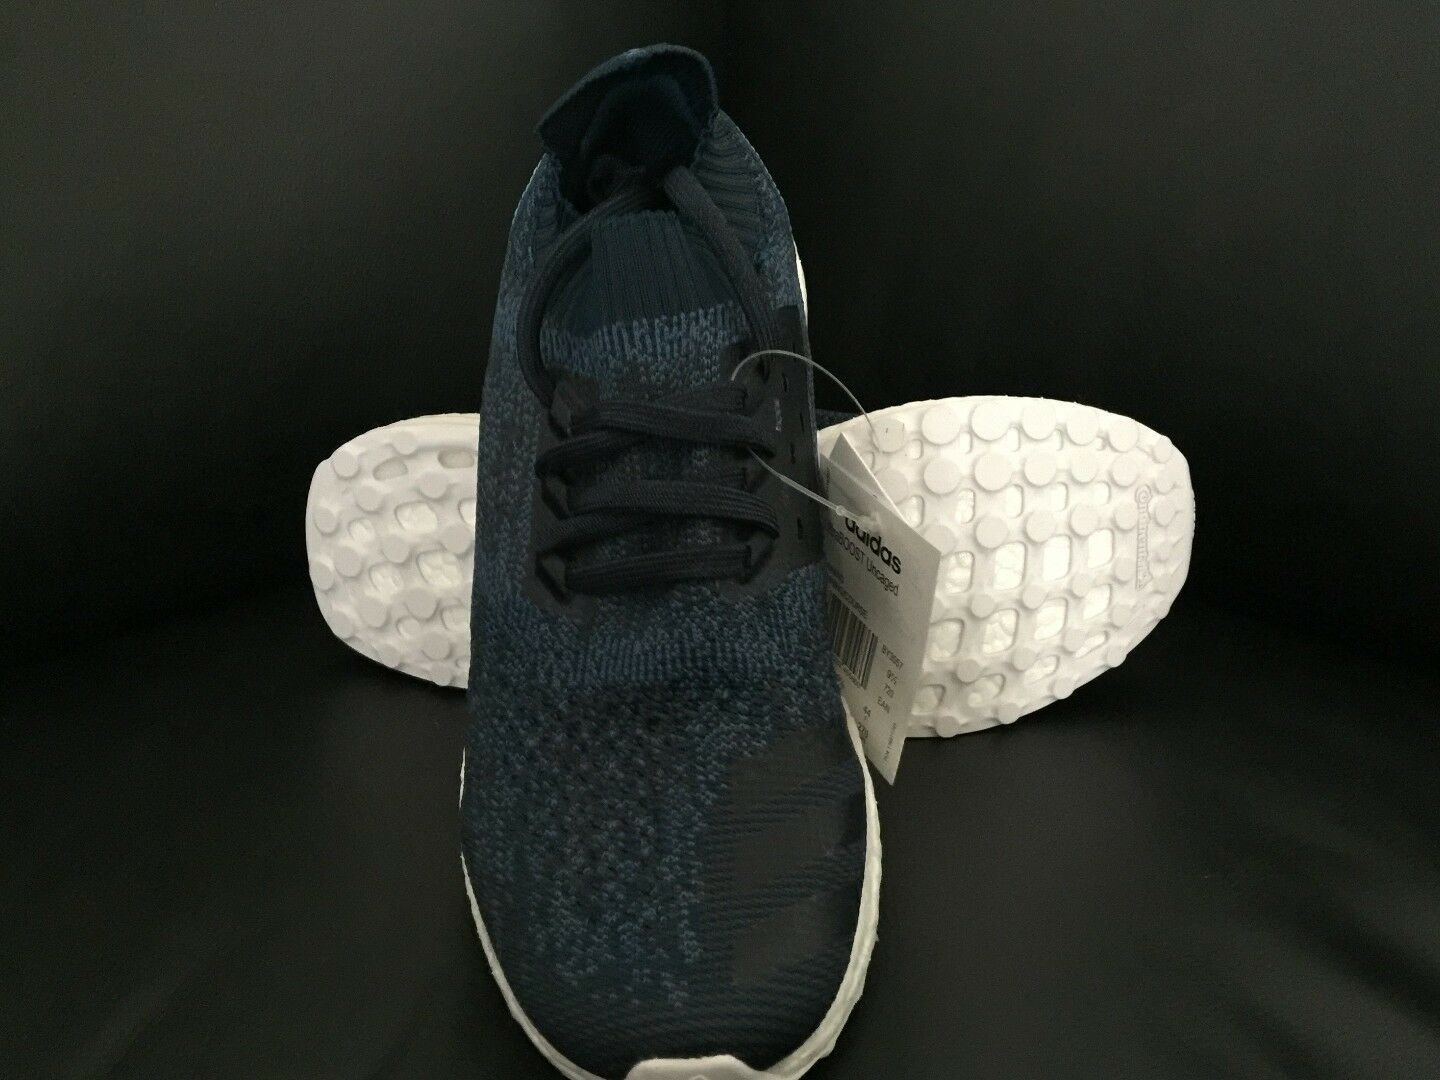 Adidas X Parley Ultra Boost Uncaged, Legend bluee, (BY3057), 10 US